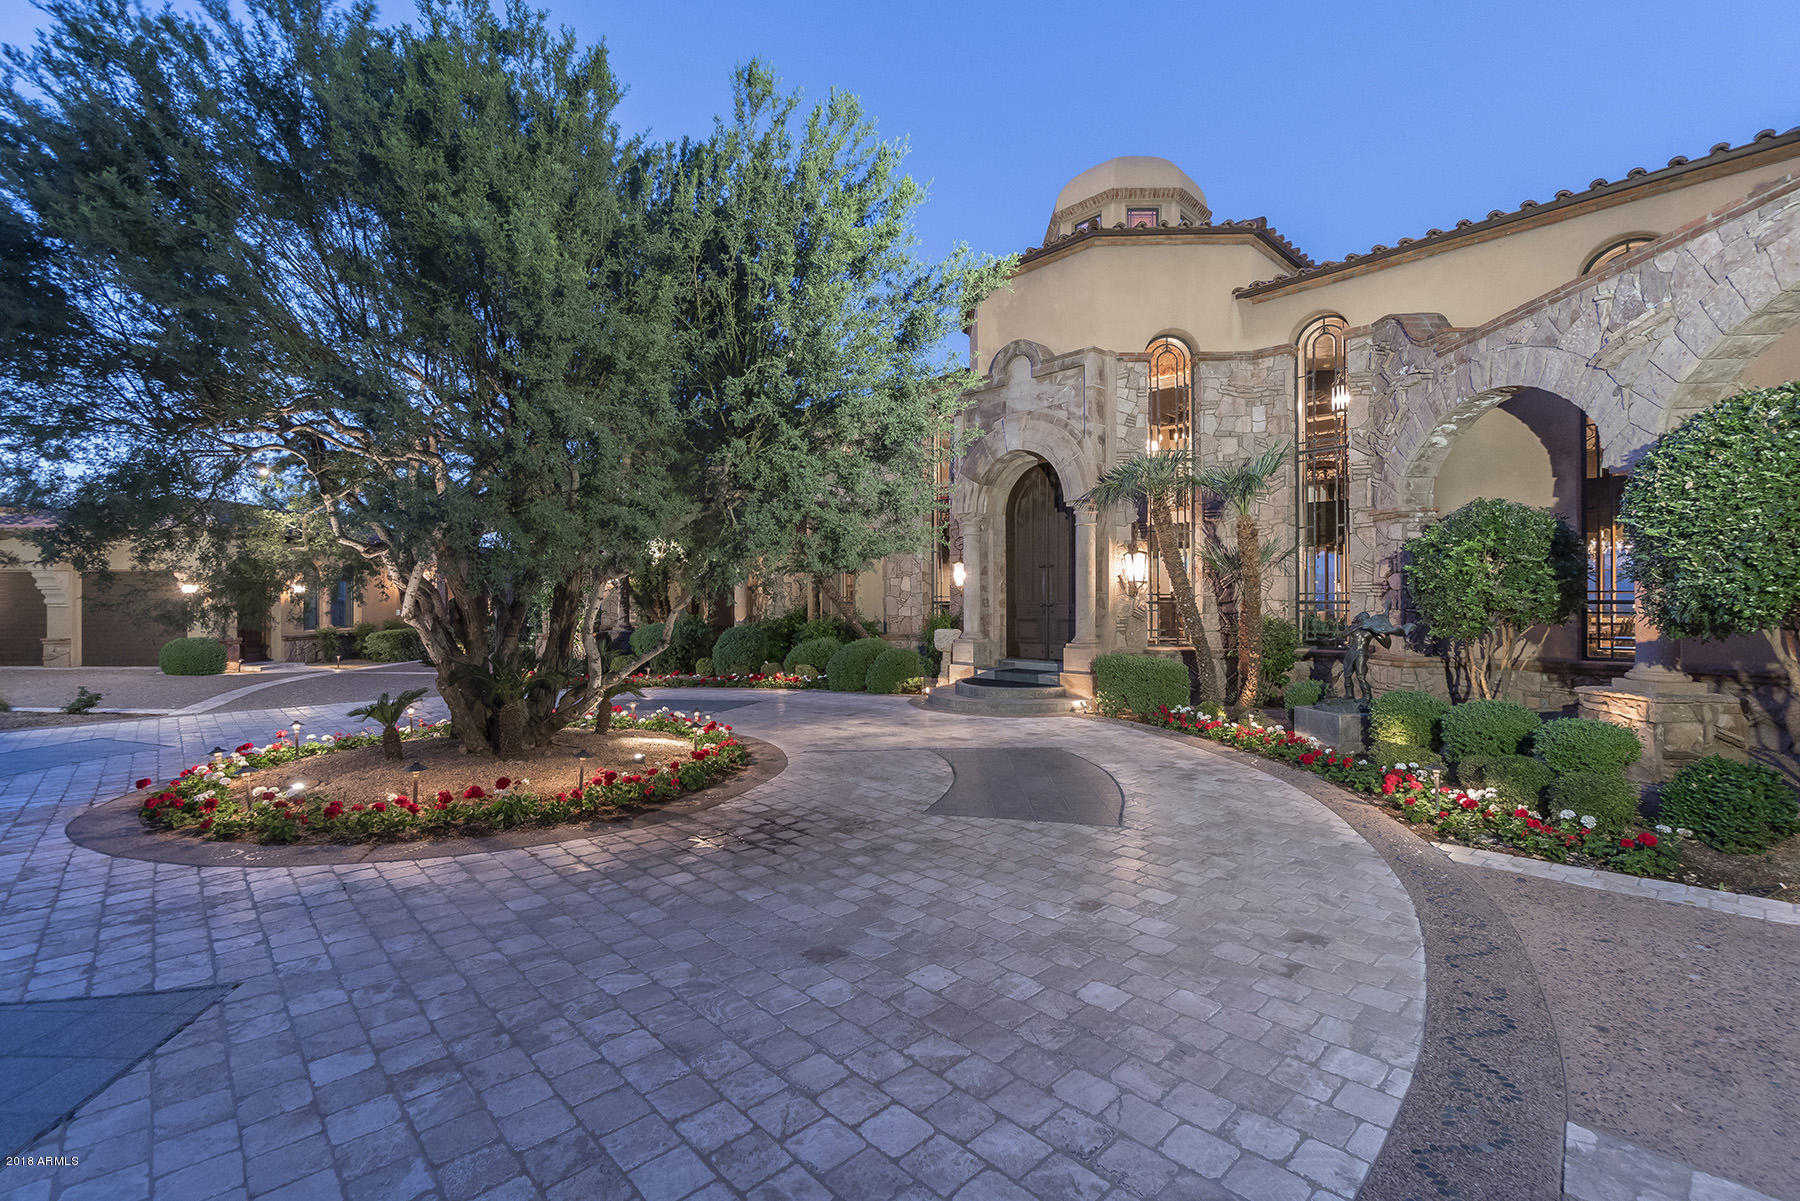 $8,500,000 - 5Br/9Ba - Home for Sale in Camel Dale Properties, Paradise Valley